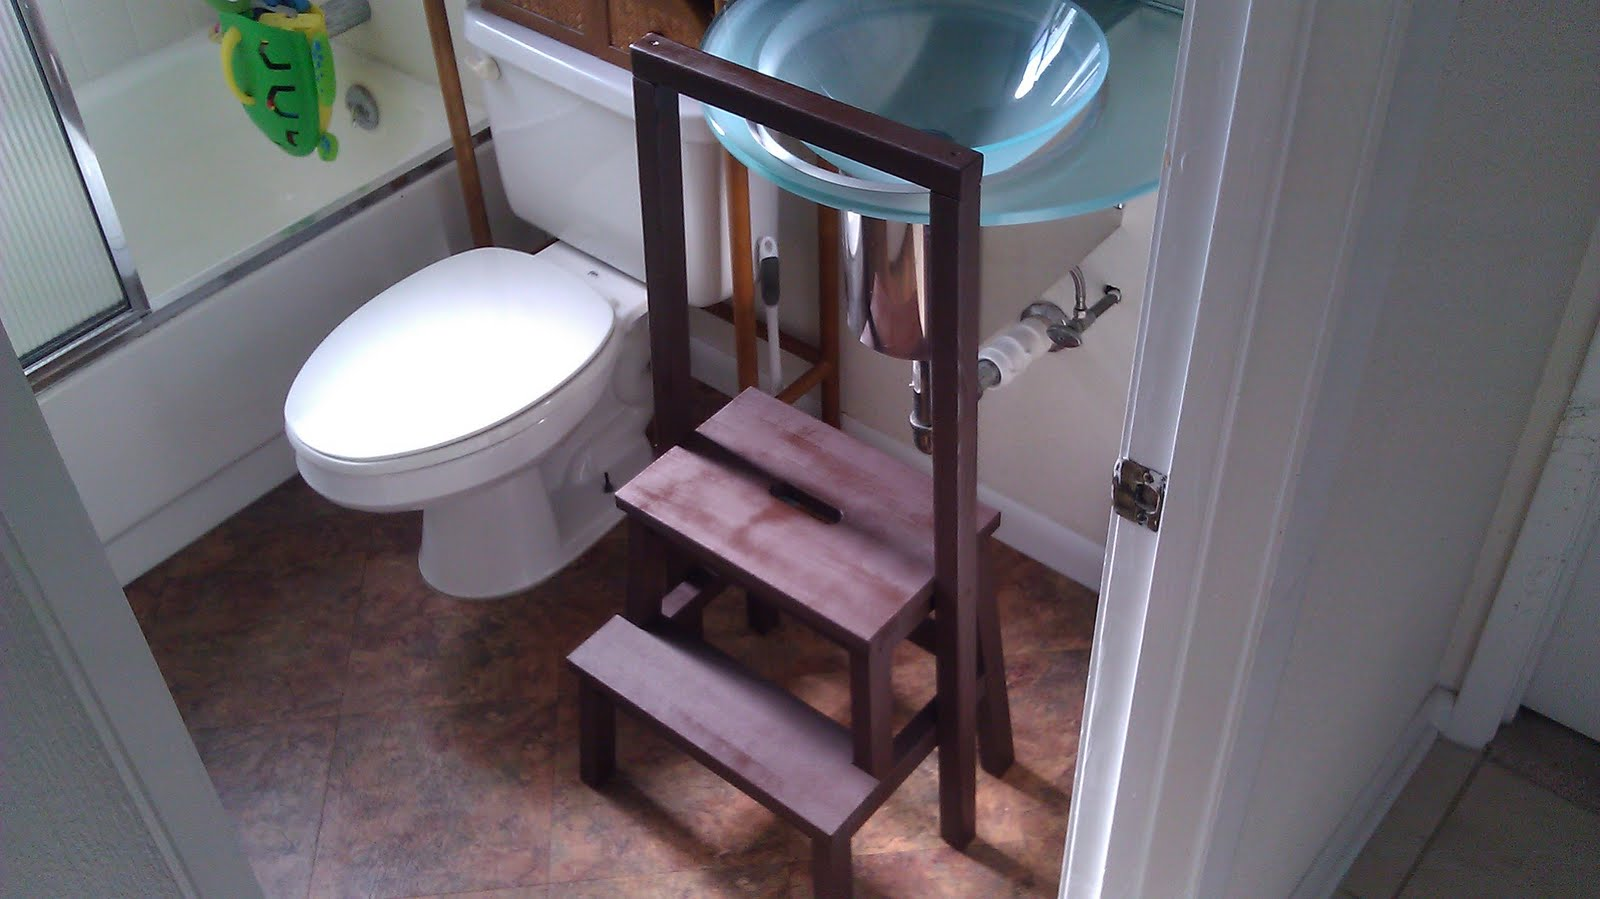 Pleasing Bekvam Step Stool Hacks And Makeovers Apartment Therapy Machost Co Dining Chair Design Ideas Machostcouk